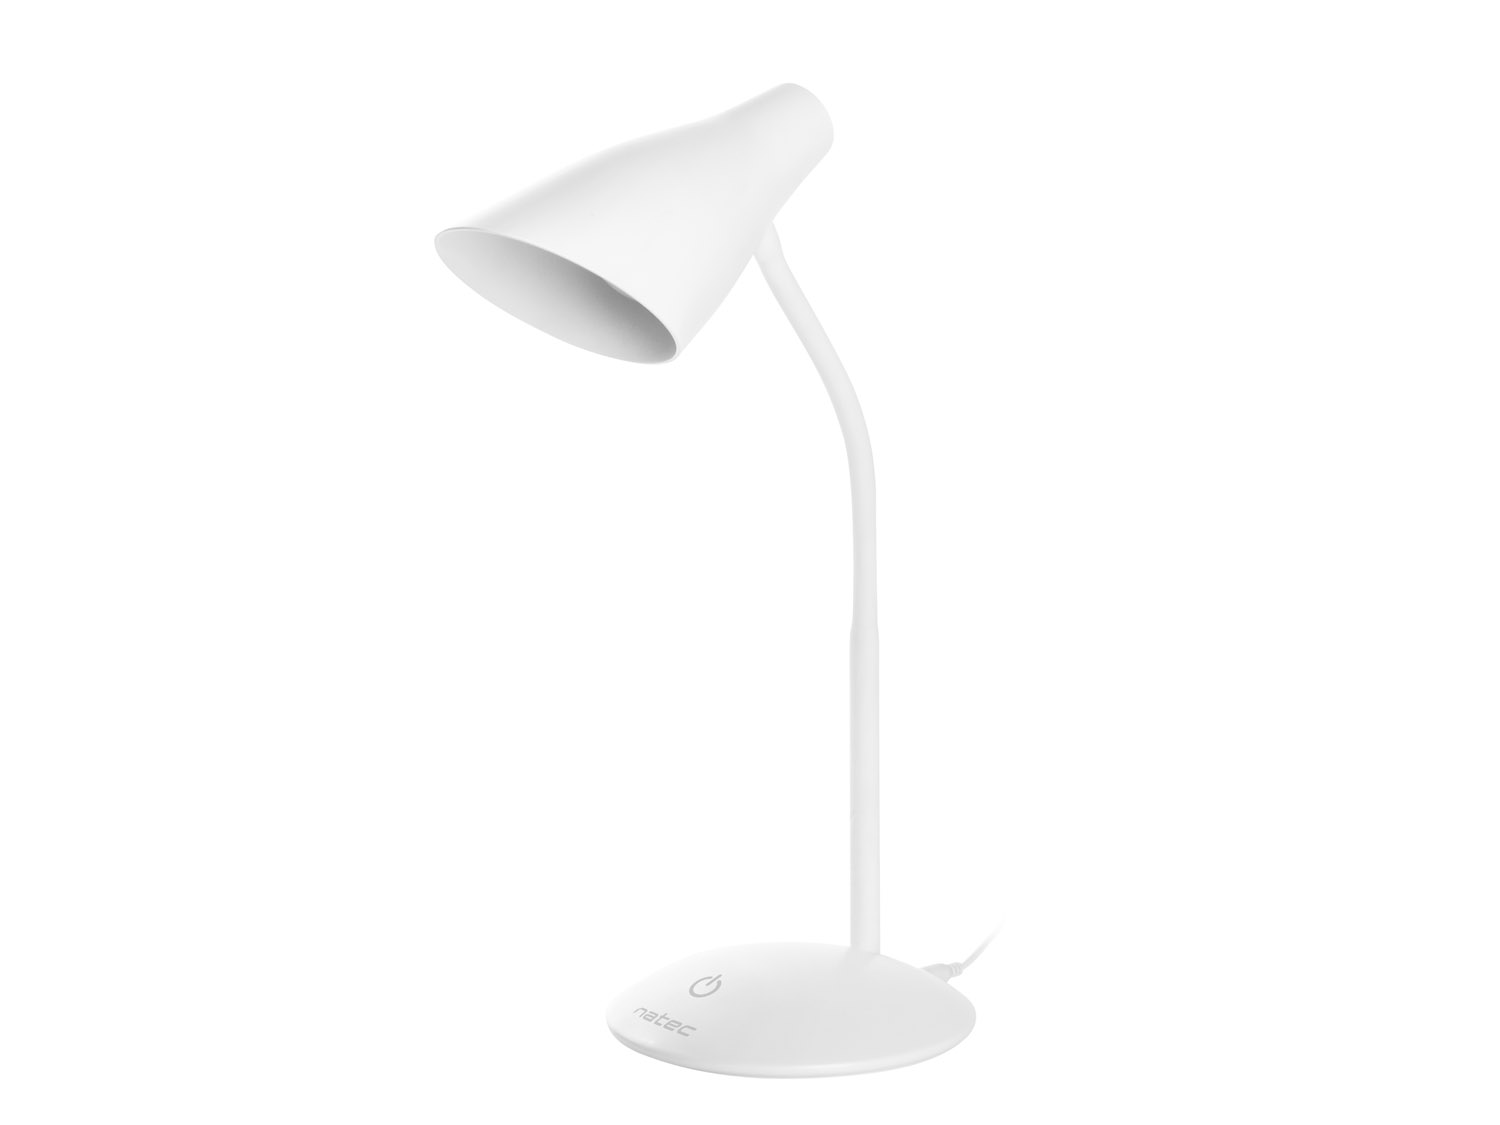 LED stolní lampa NATEC FIREFLY HOME 24LED, 5W